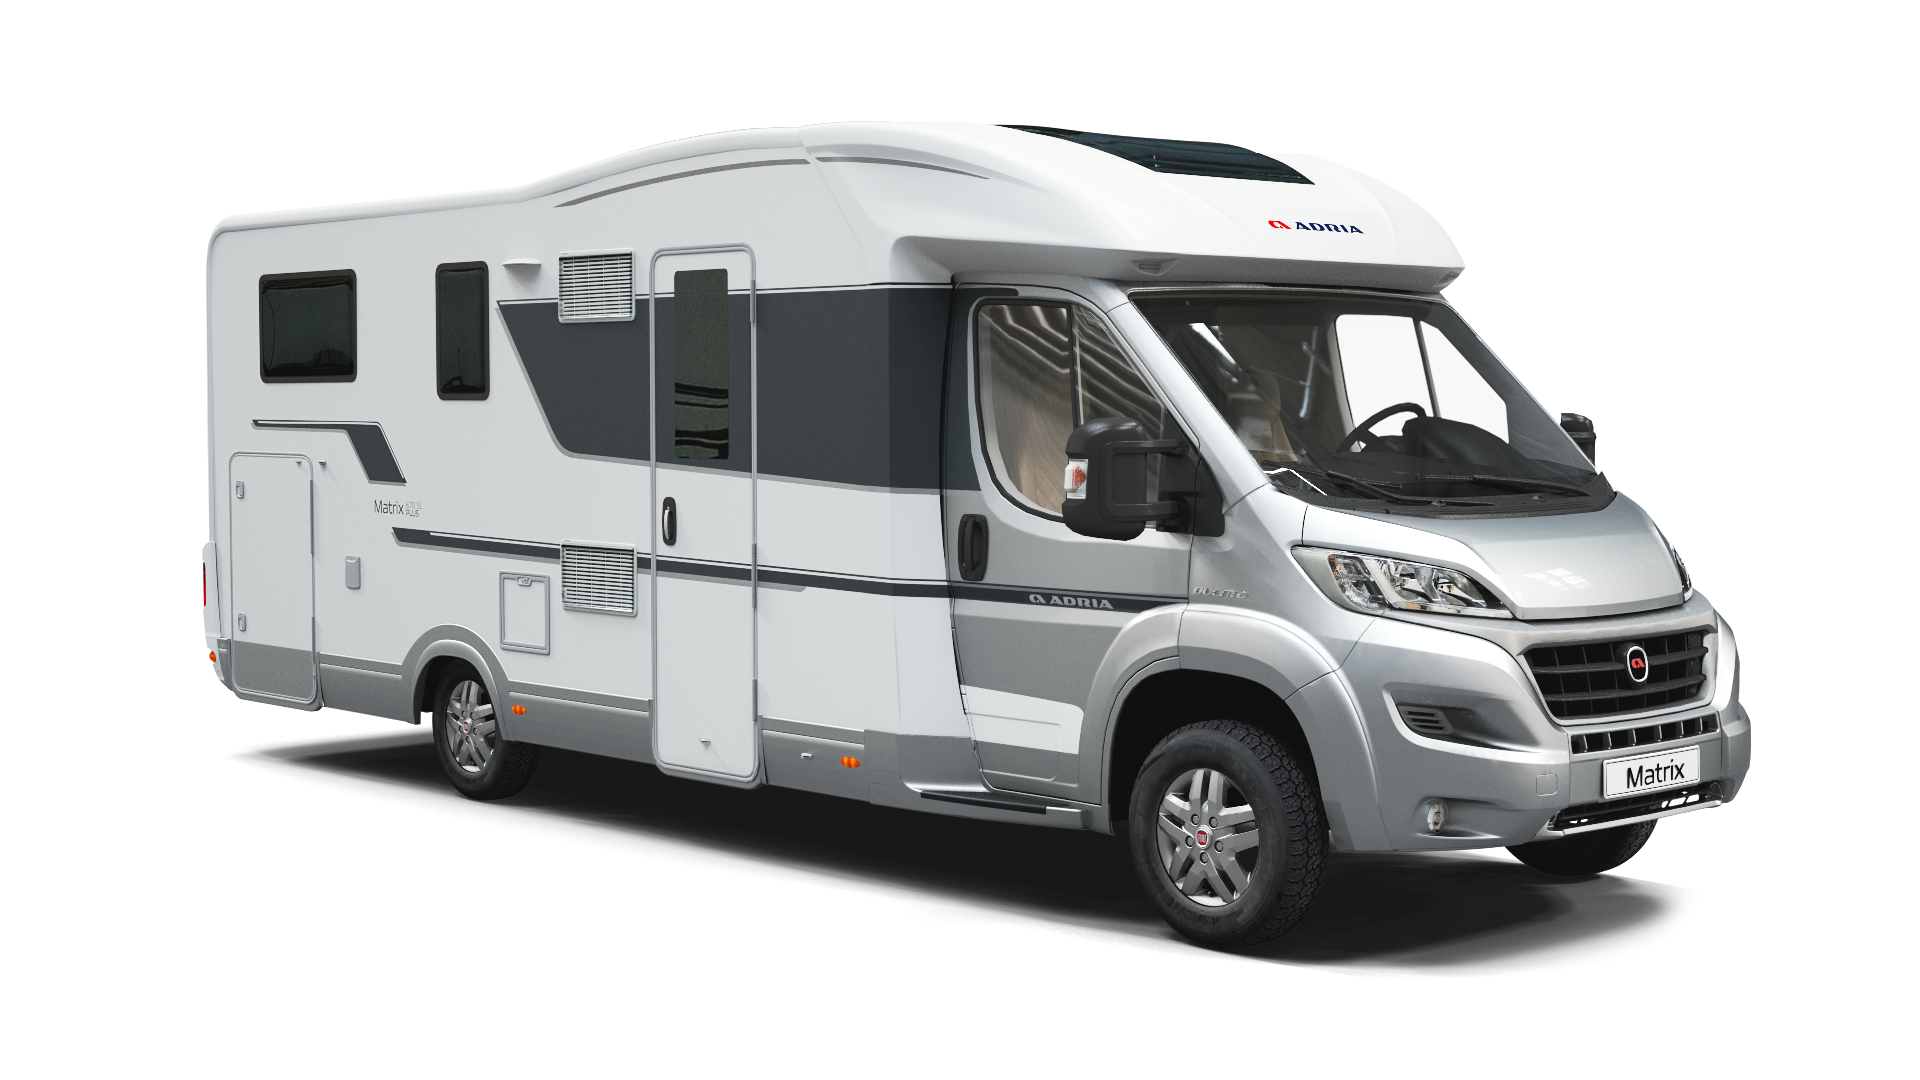 Camping car adria matrix plus 670 sc